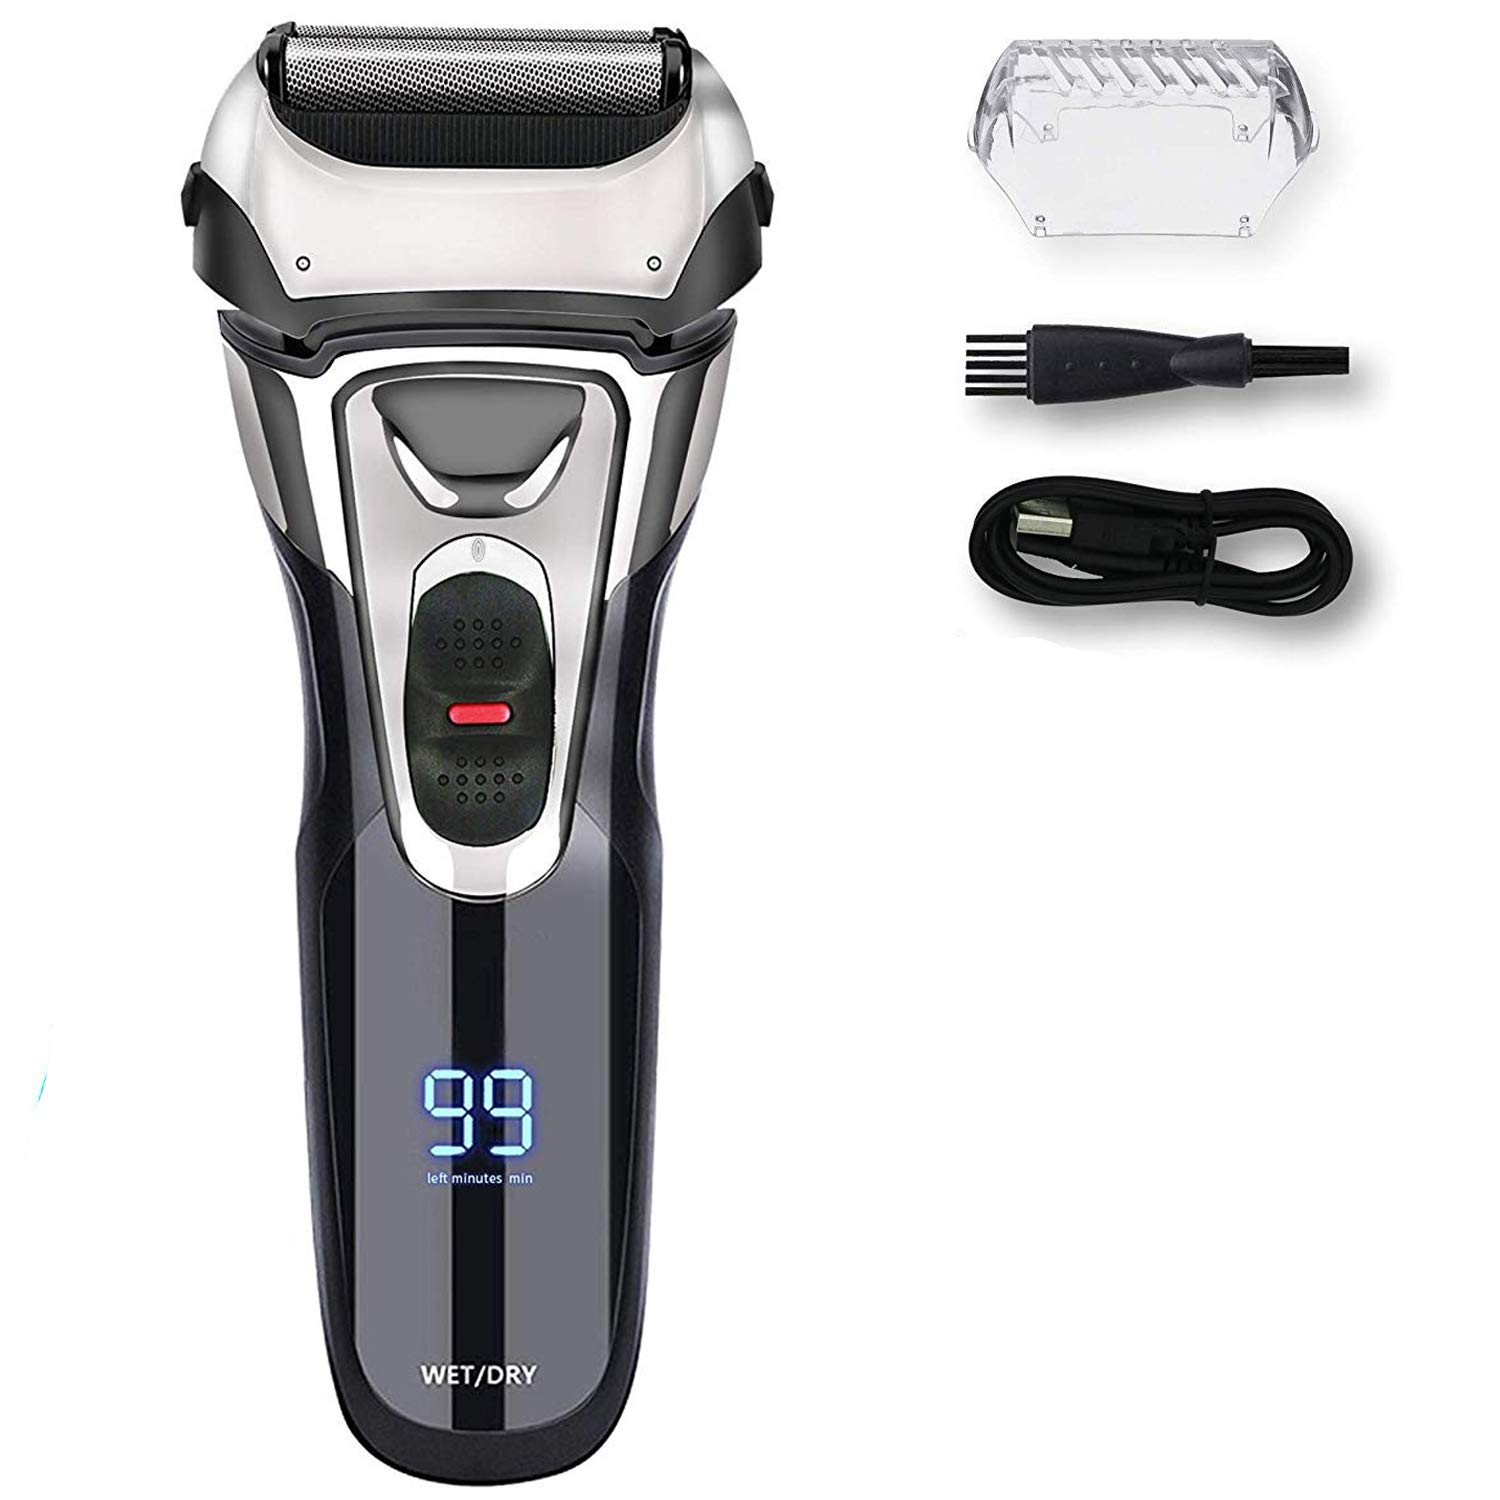 Awecot Electric Razor for Men: Best IPX7 Waterproof Men's Electric Shaver